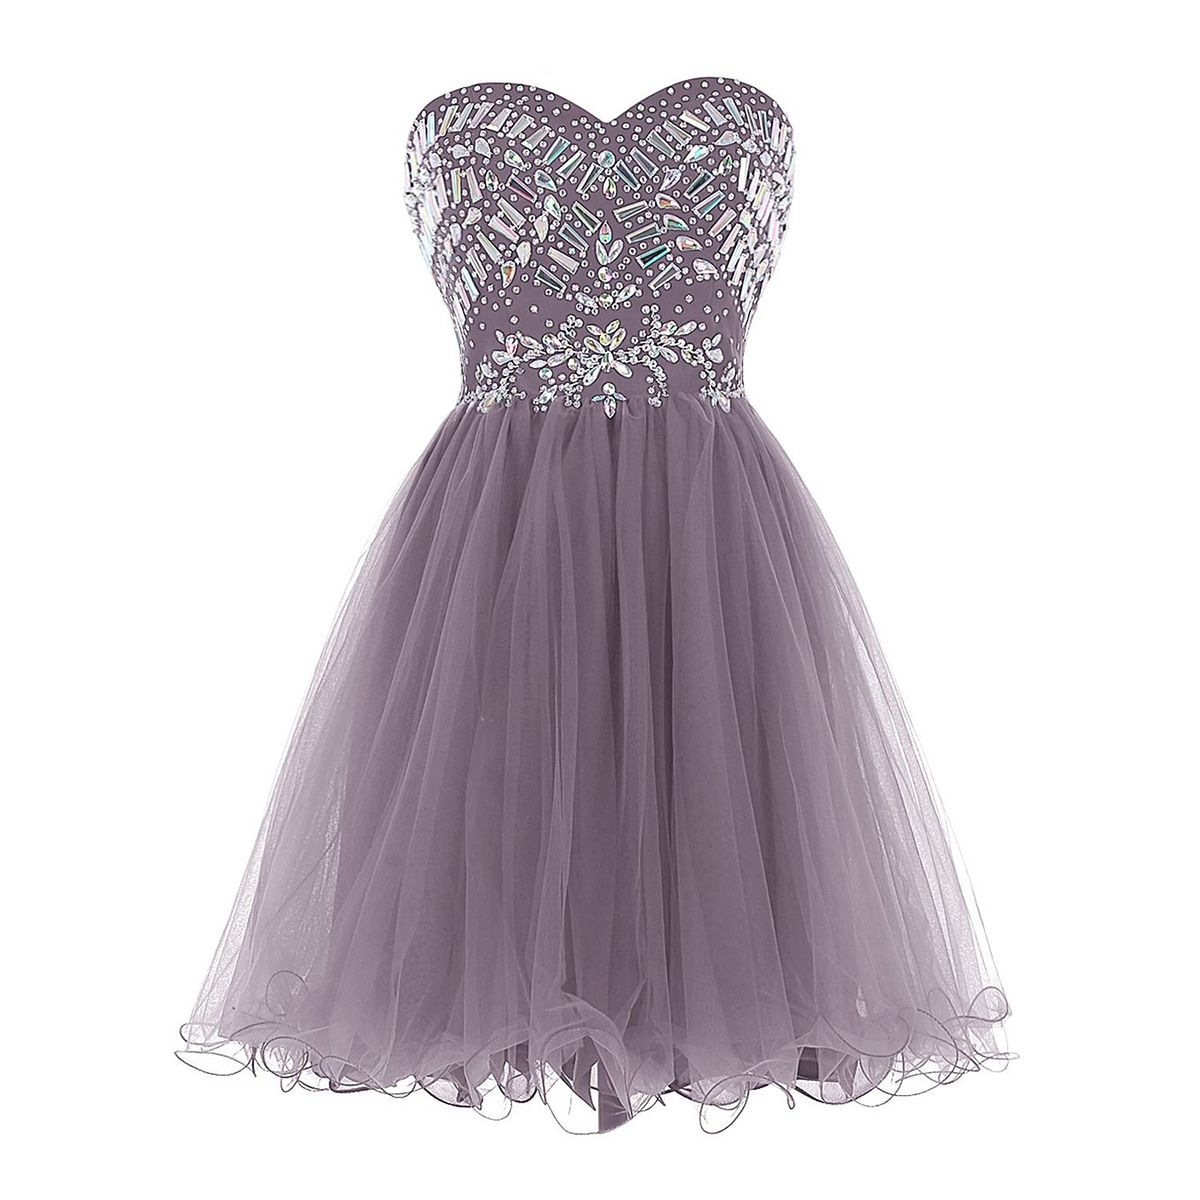 Homecoming dresses short prom dress tulle dress prom dresses and